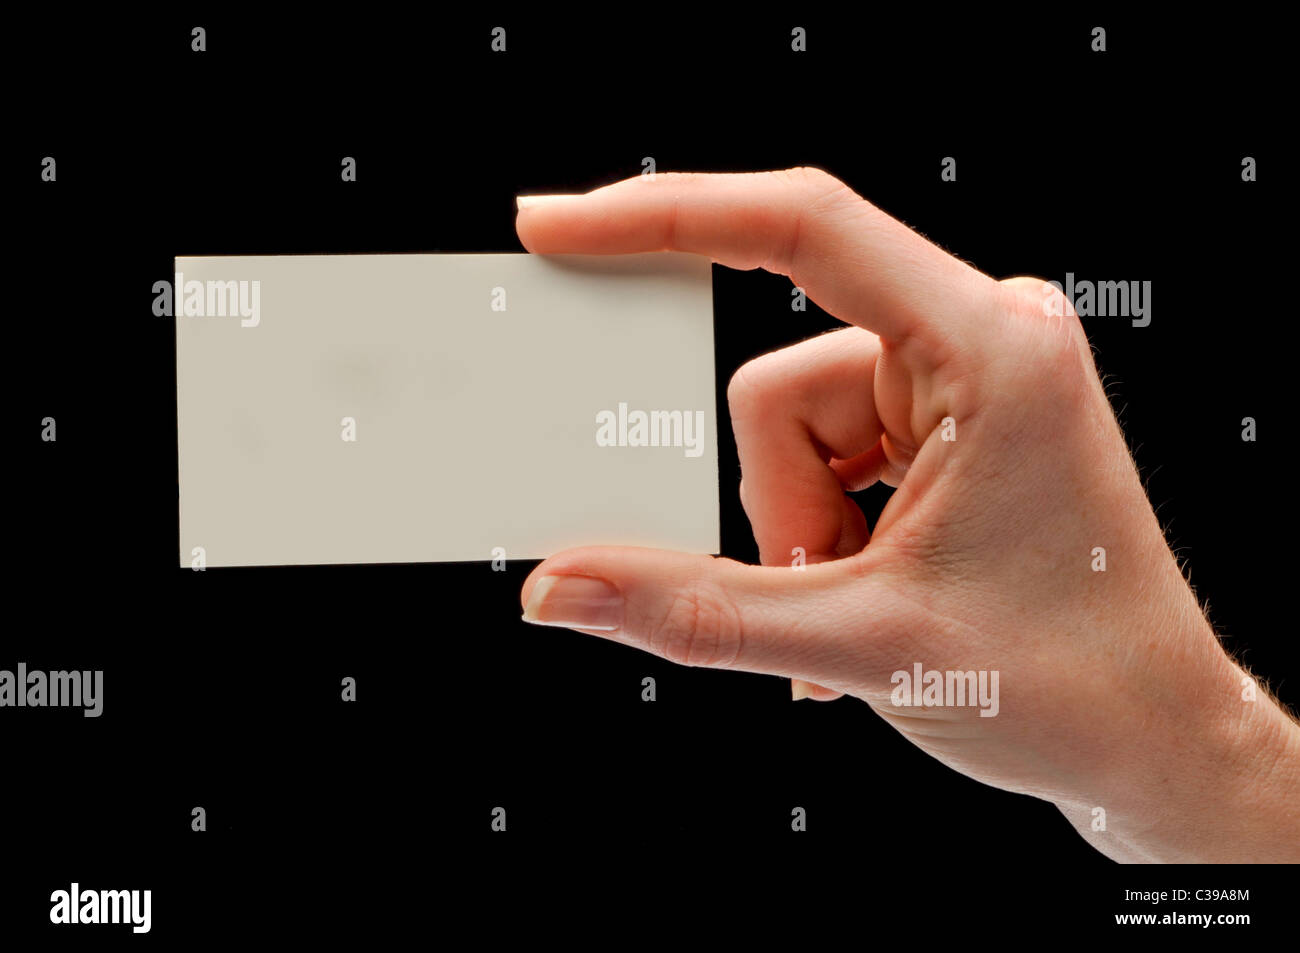 hand and fingers holding blank business card Stock Photo: 36470356 ...